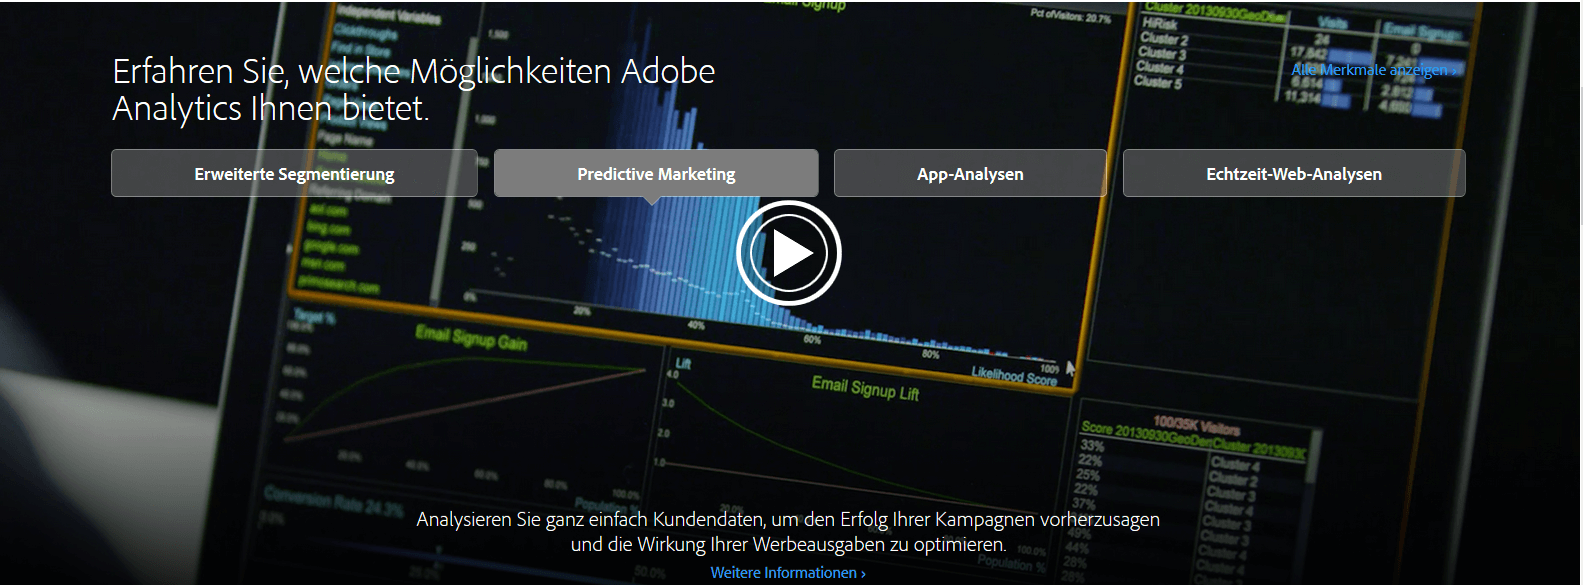 Adobe Web Analytics